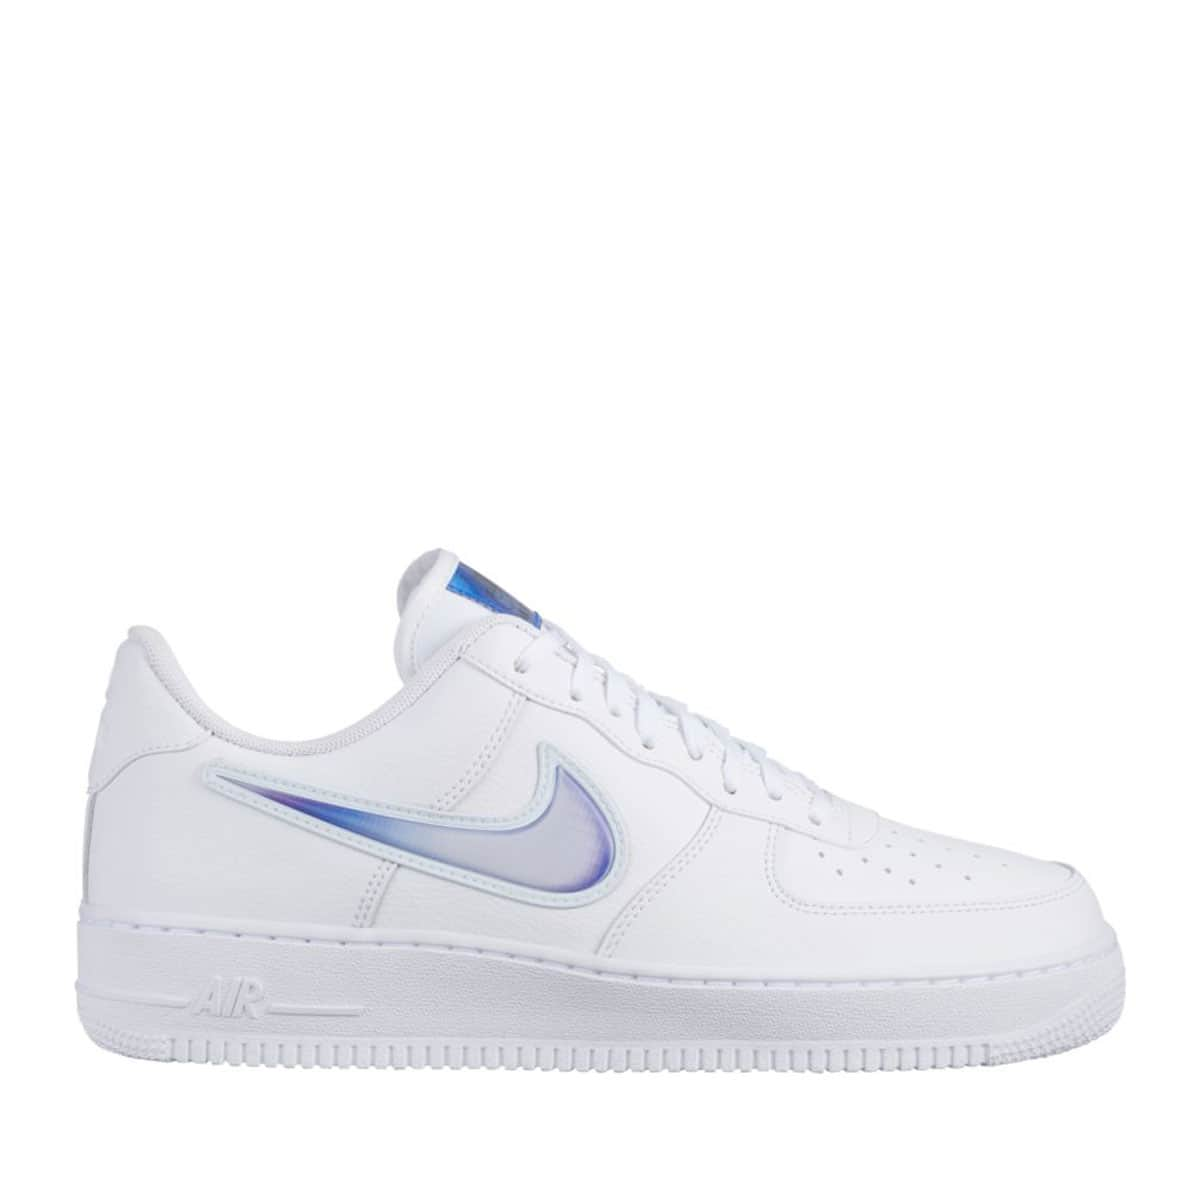 NIKE AIR FORCE 1 '07 LV8 3 WHITE/RACER BLUE 19SU-I